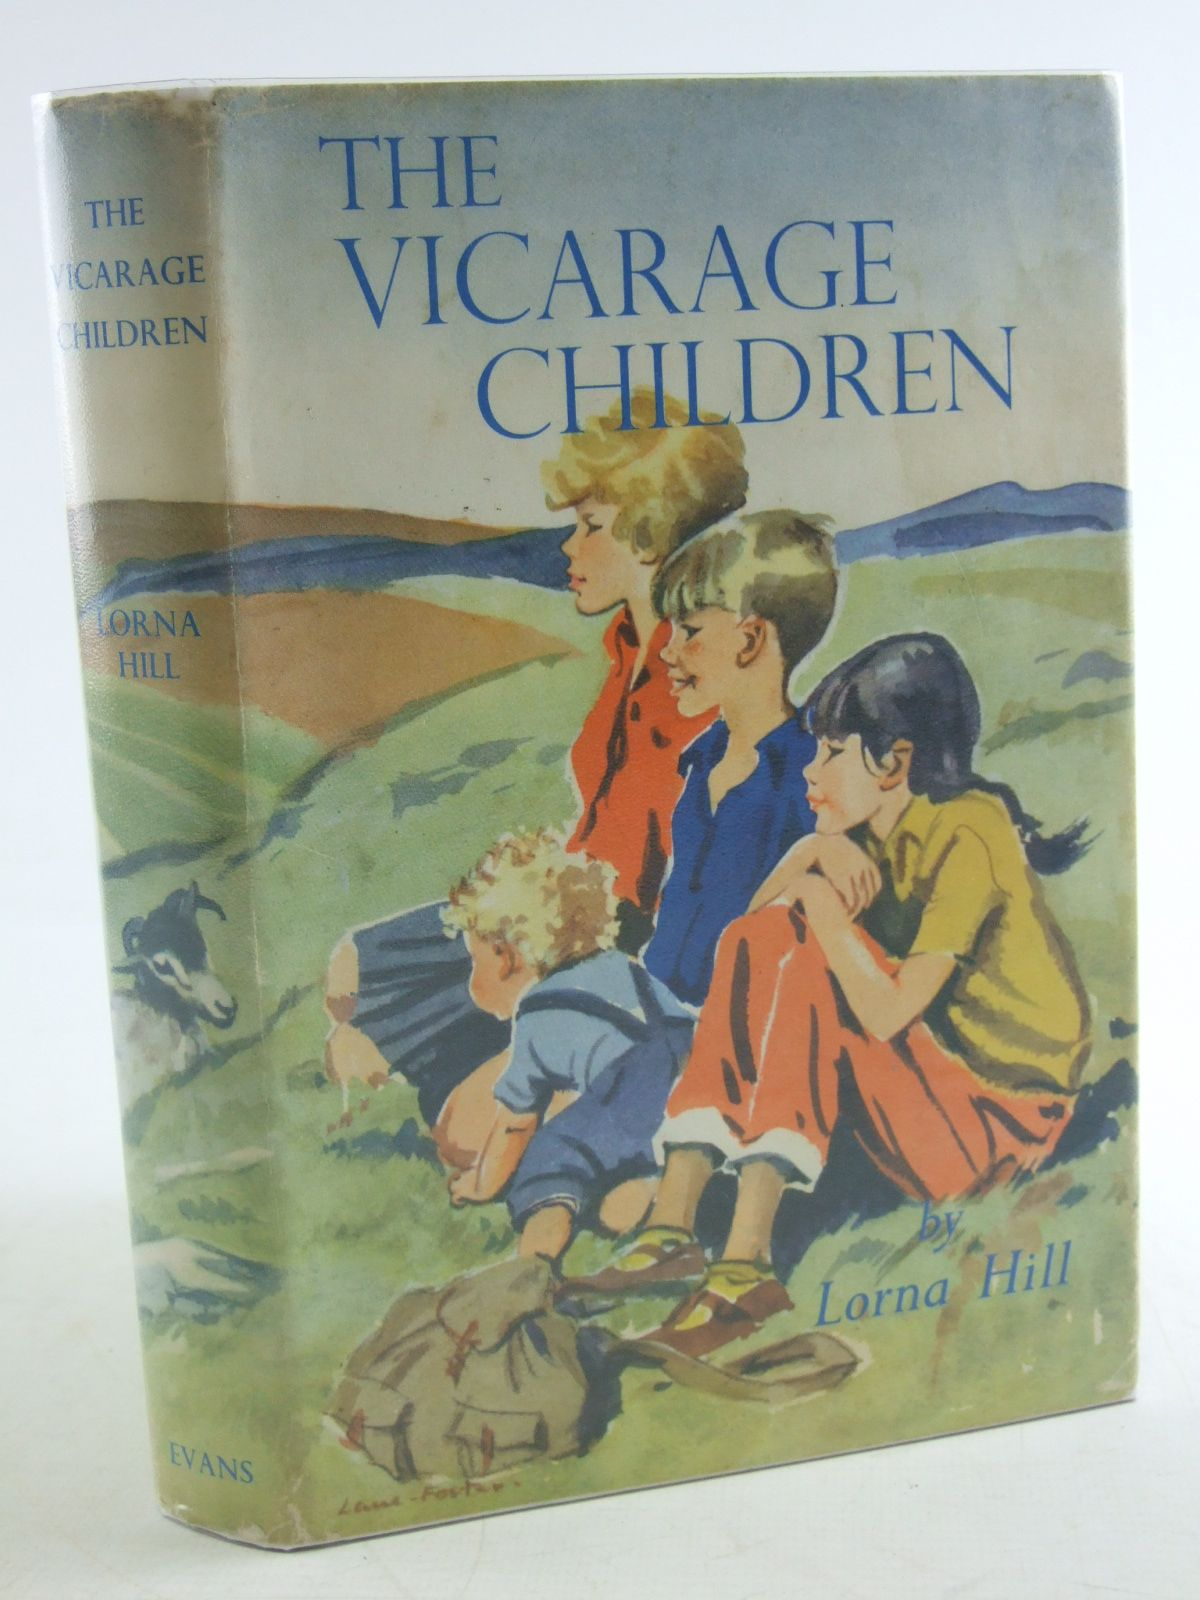 Photo of THE VICARAGE CHILDREN written by Hill, Lorna illustrated by Foster, Marcia Lane published by Evans Brothers Limited (STOCK CODE: 2108028)  for sale by Stella & Rose's Books